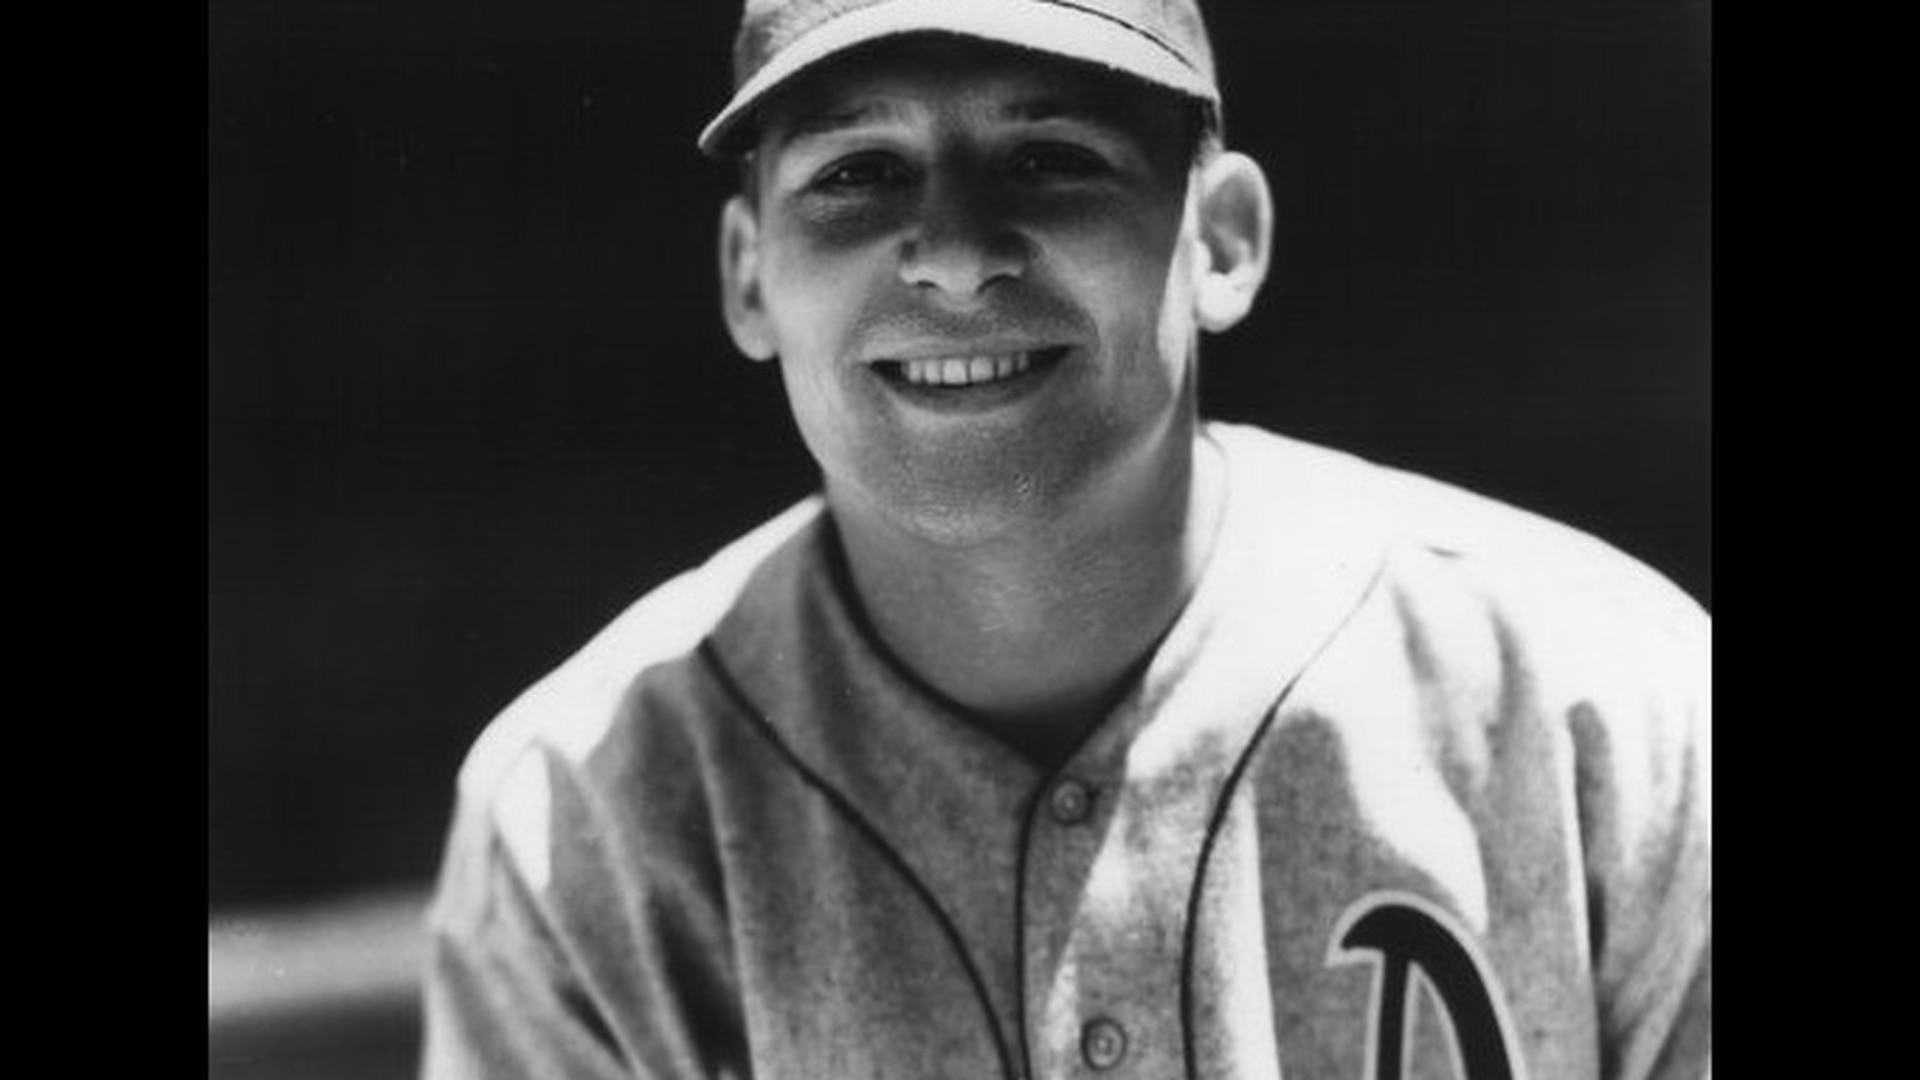 Harry O'Neill played in one Major League game but never had the chance to hit. He was killed during the assault on Iwo Jima. (Society for American Baseball Research)